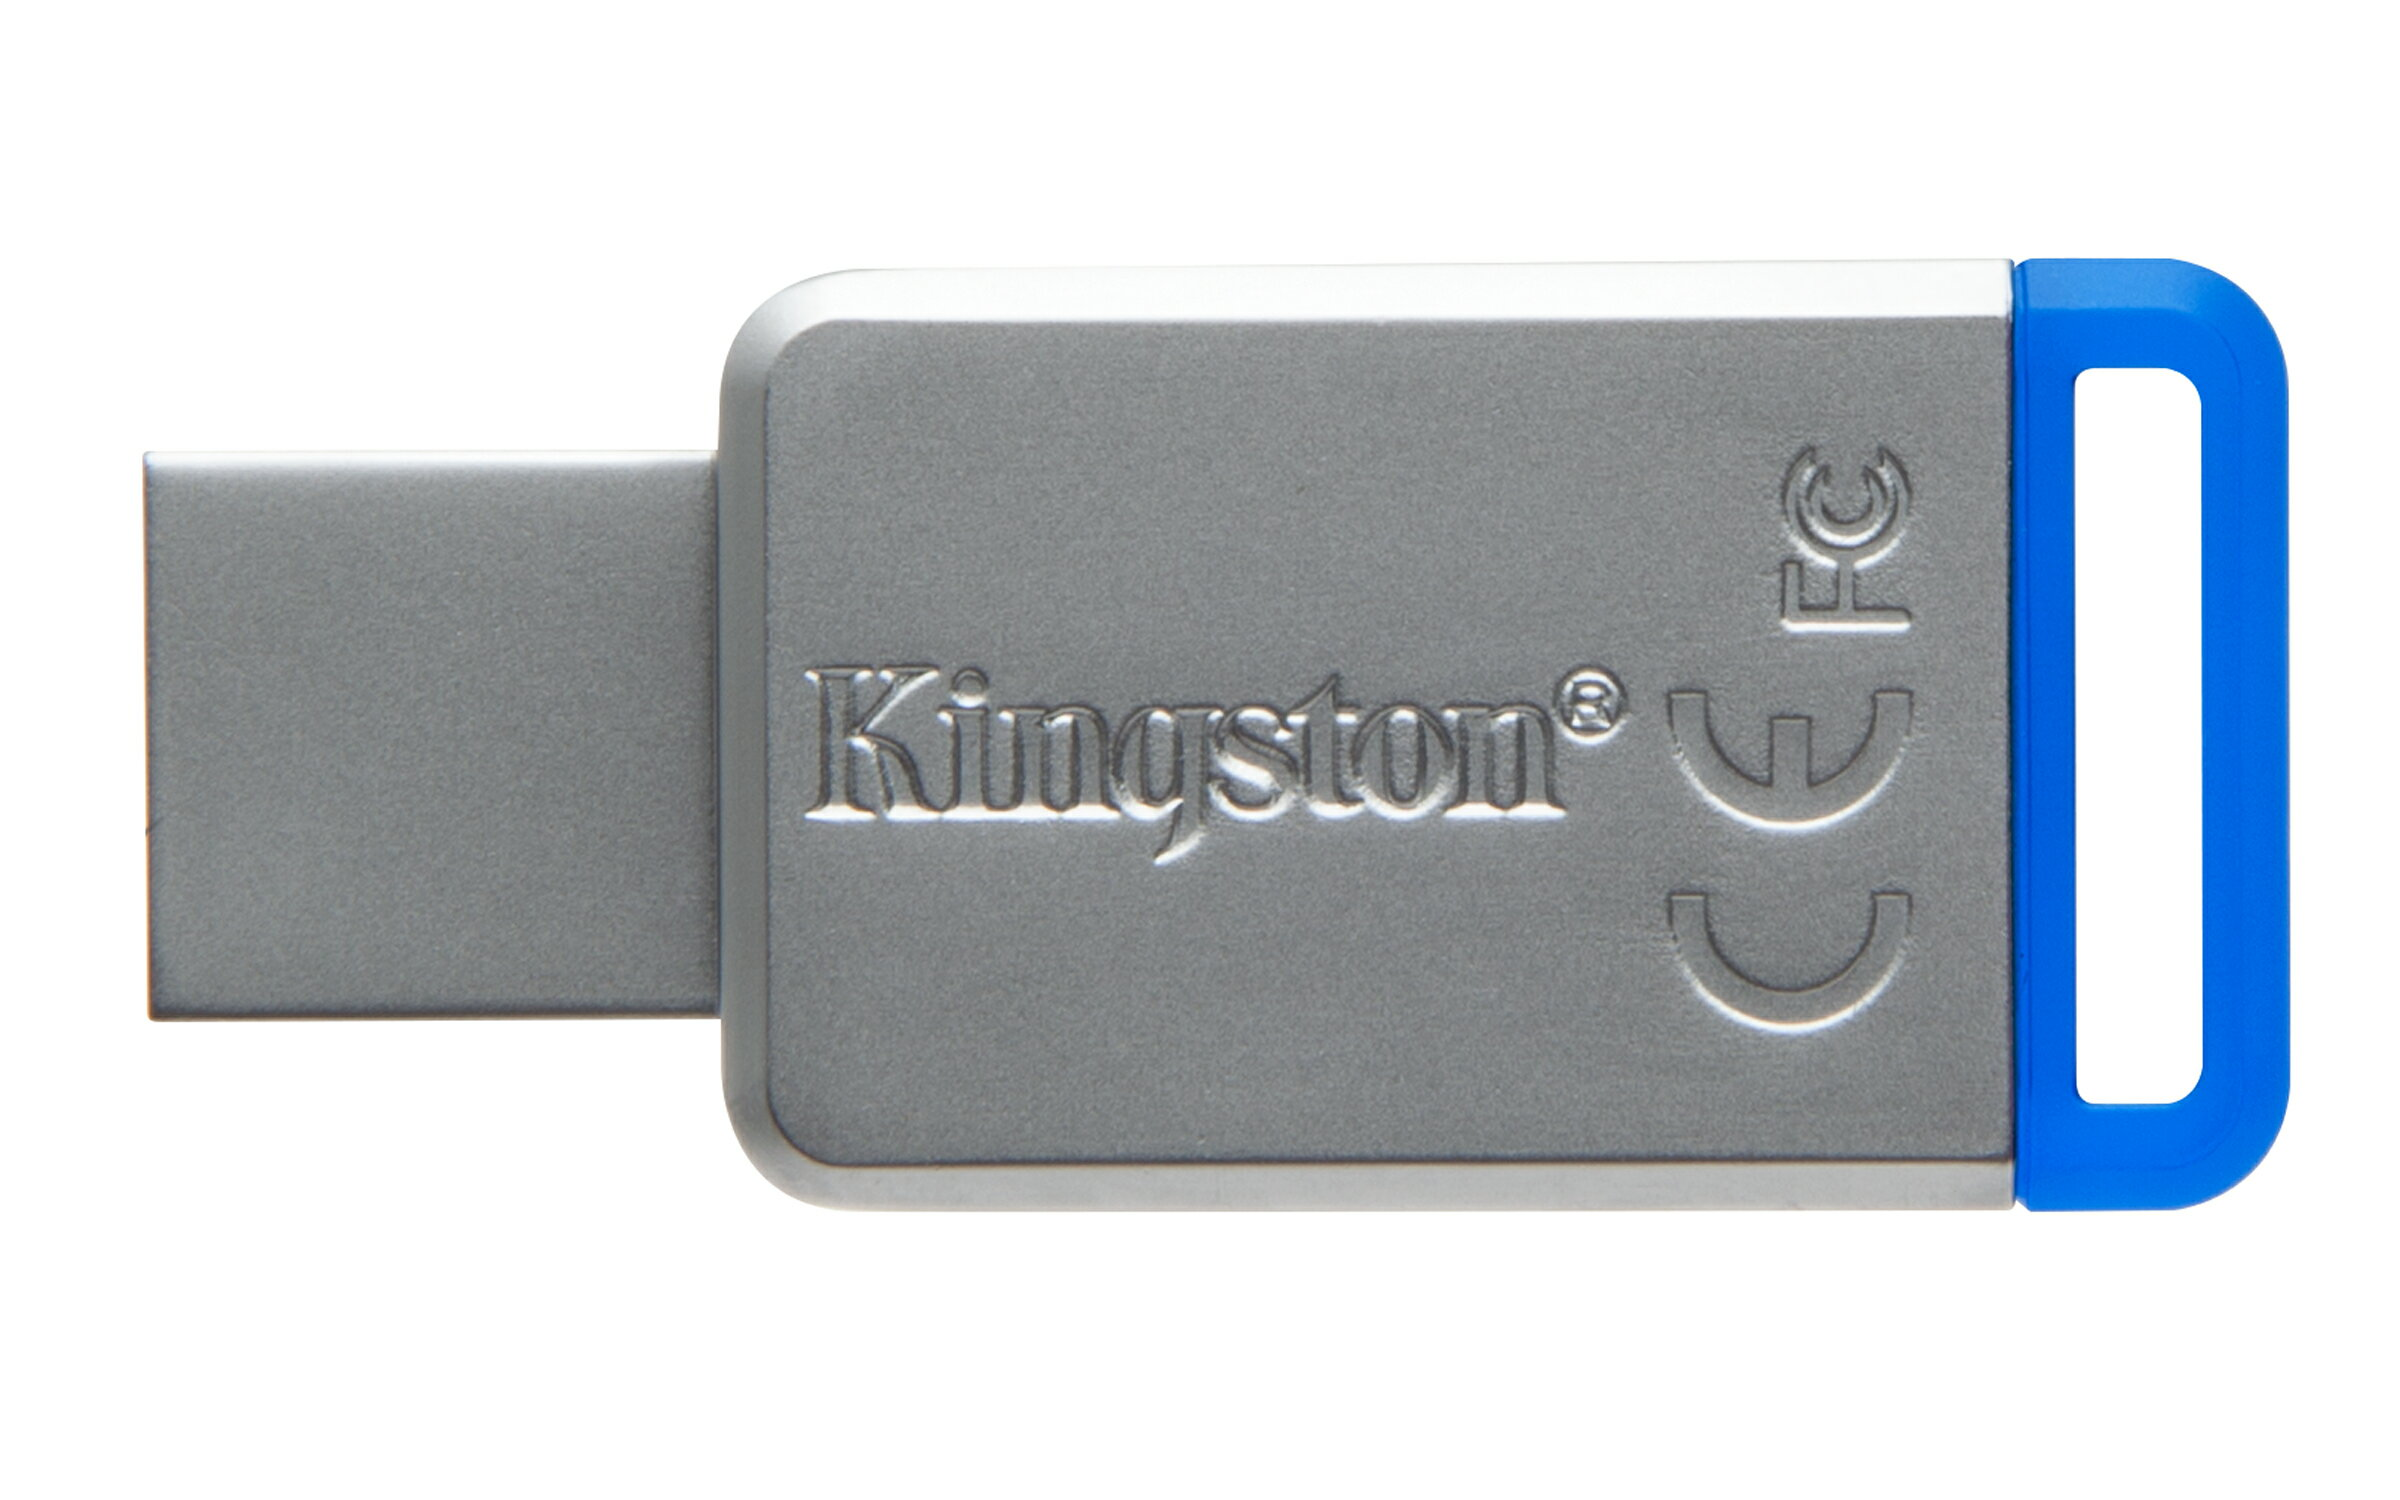 Kingston 64GB DataTraveler 50 64G DT50 USB 3.1 Gen 1 USB 3.0 110MB/s Flash Pen Thumb Drive DT50/64GB 1